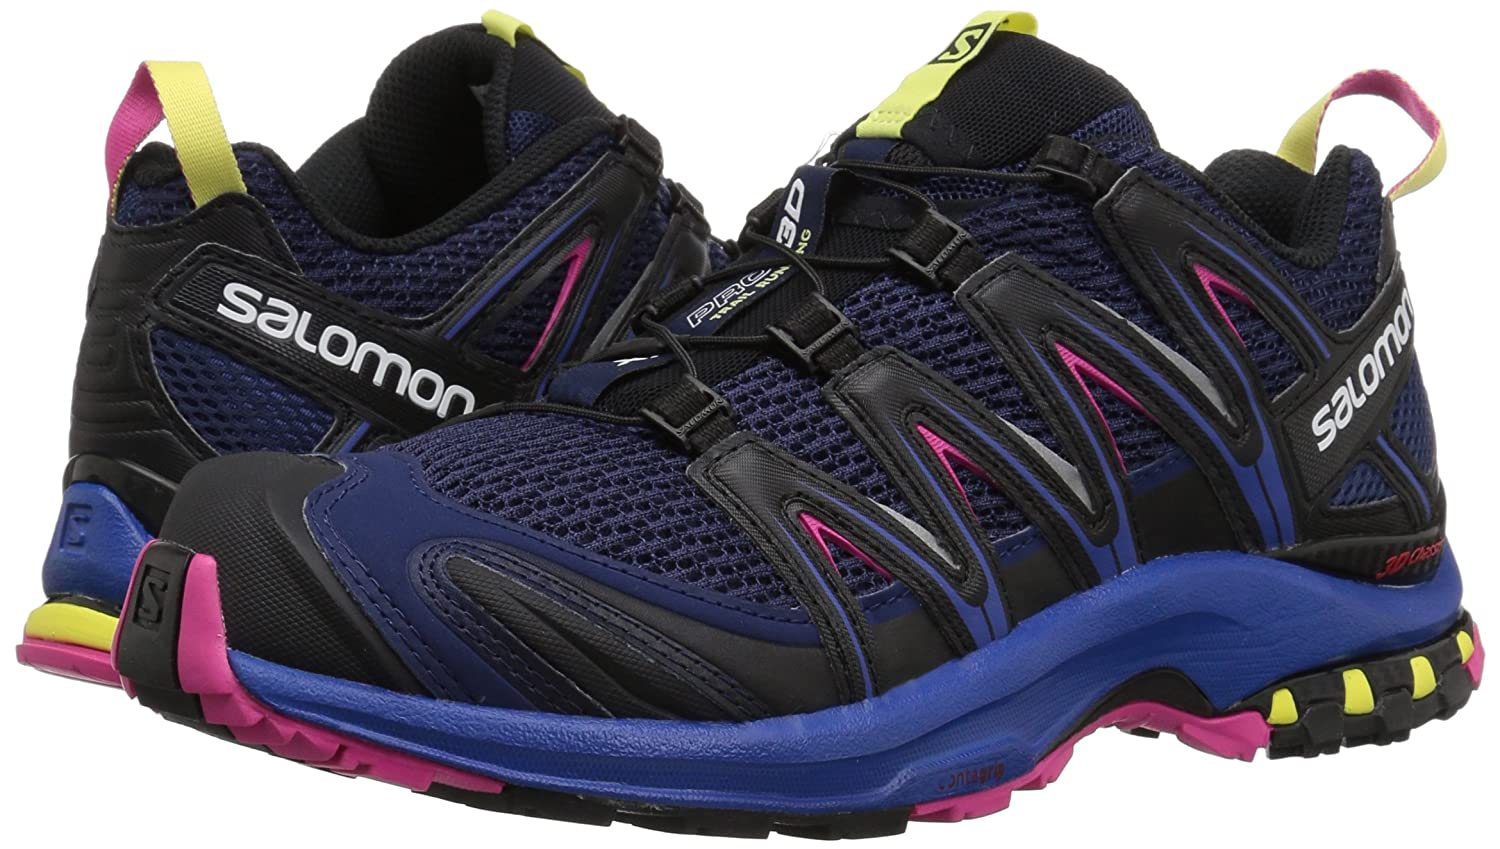 Salomon Women's Xa Pro 3D W Trail Running Shoe B073P58C6Z 9.5 B(M) US|Medieval Blue